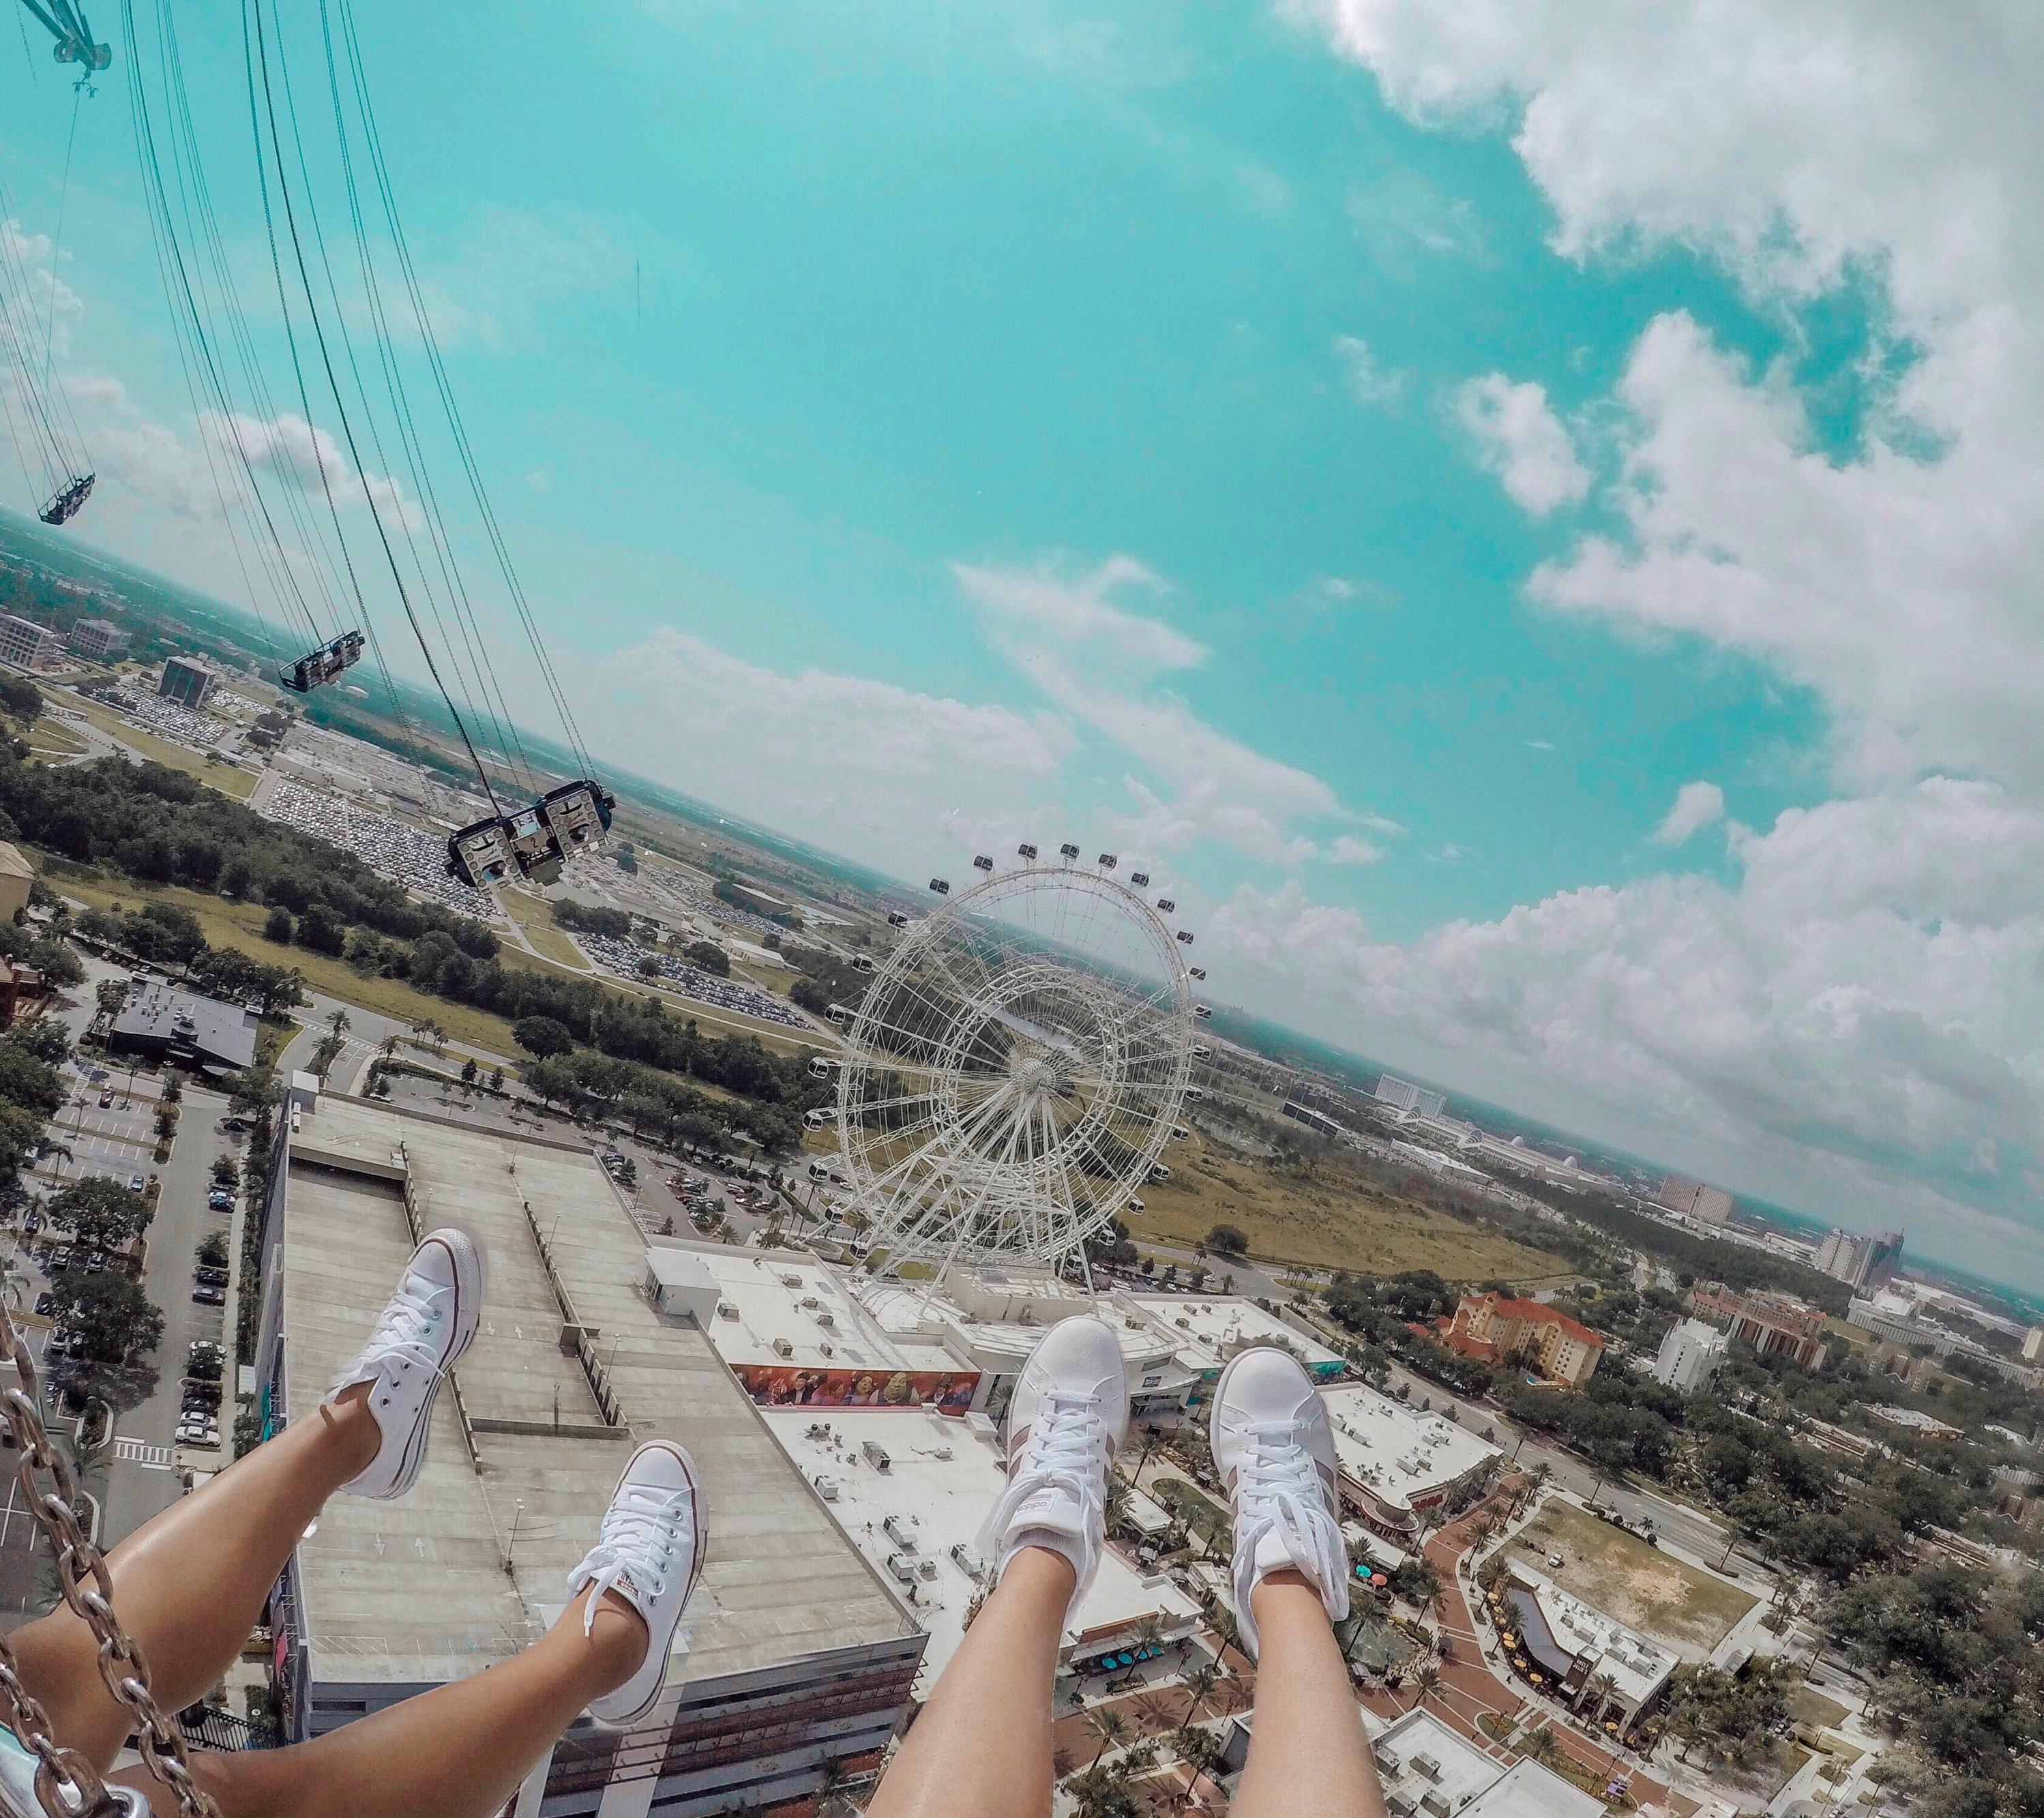 We Rode the World's Tallest Swing Ride!